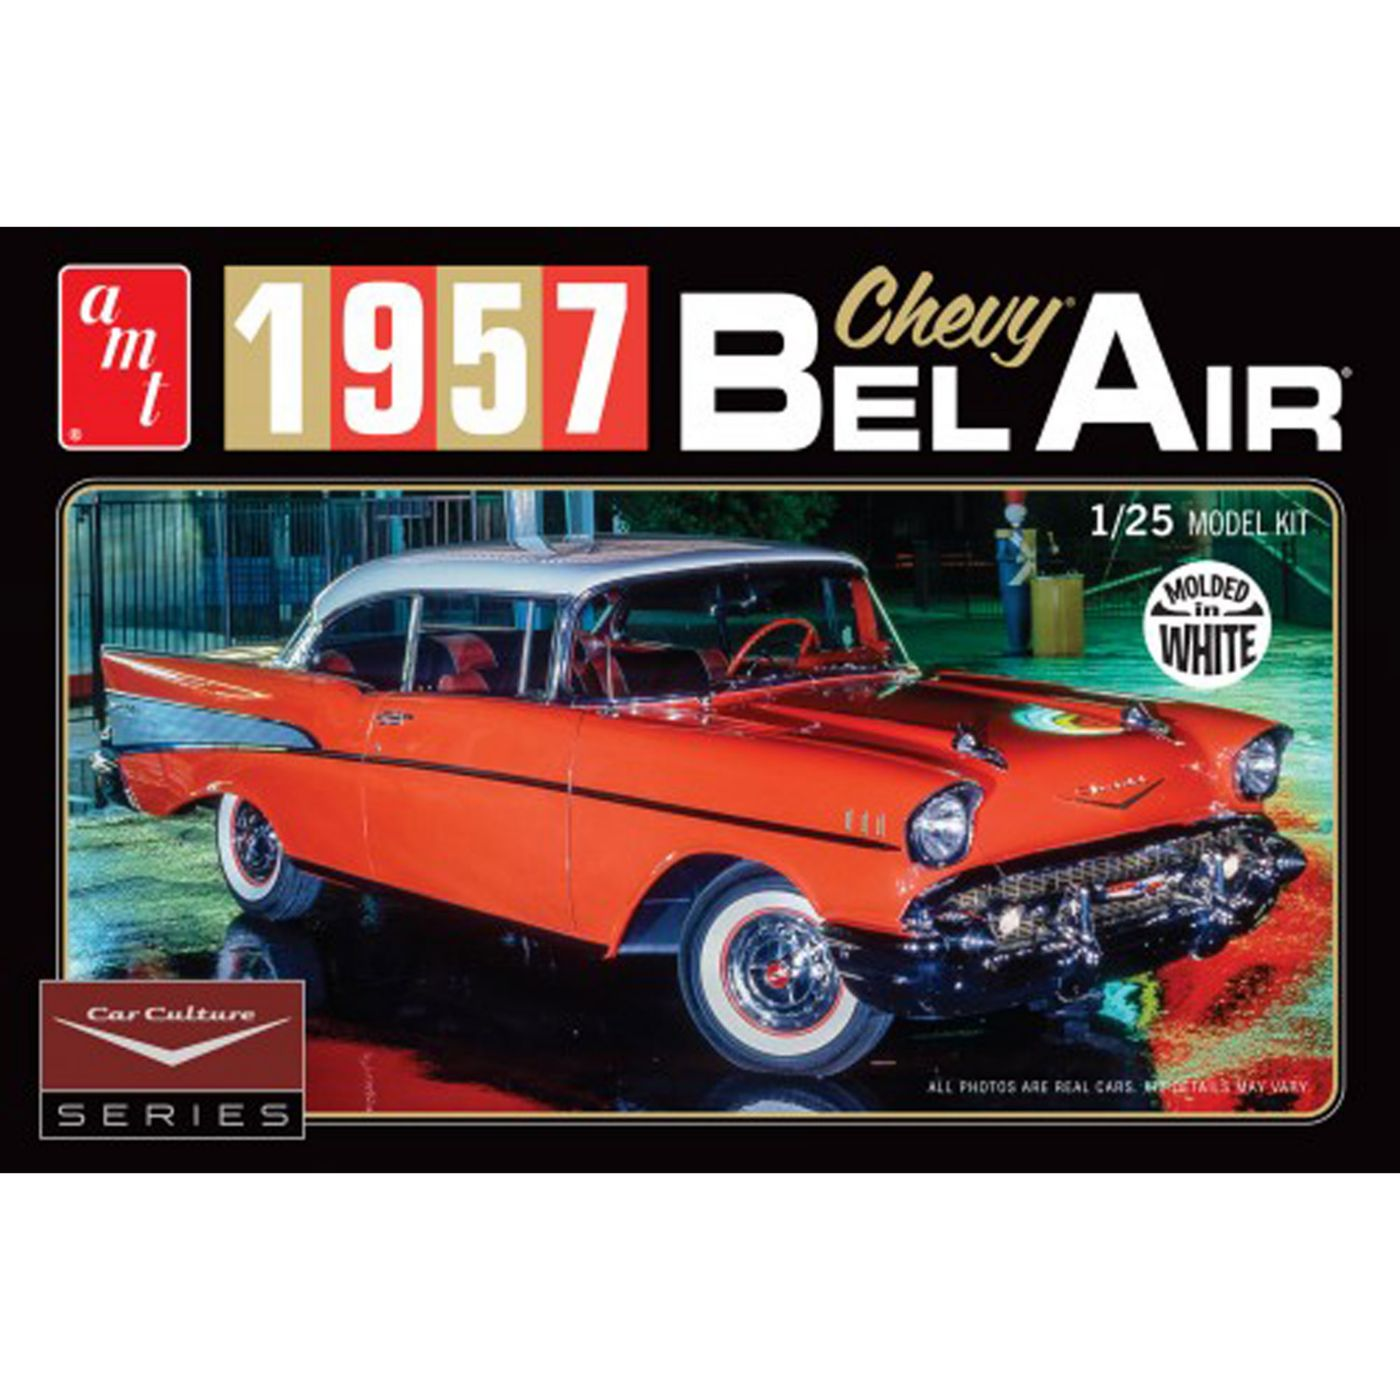 Pca Auto Archives La Boutique Du Tlguid 1957 Chevy Bel Air Fuse Box Location 1 25 W Diorama Booklet White